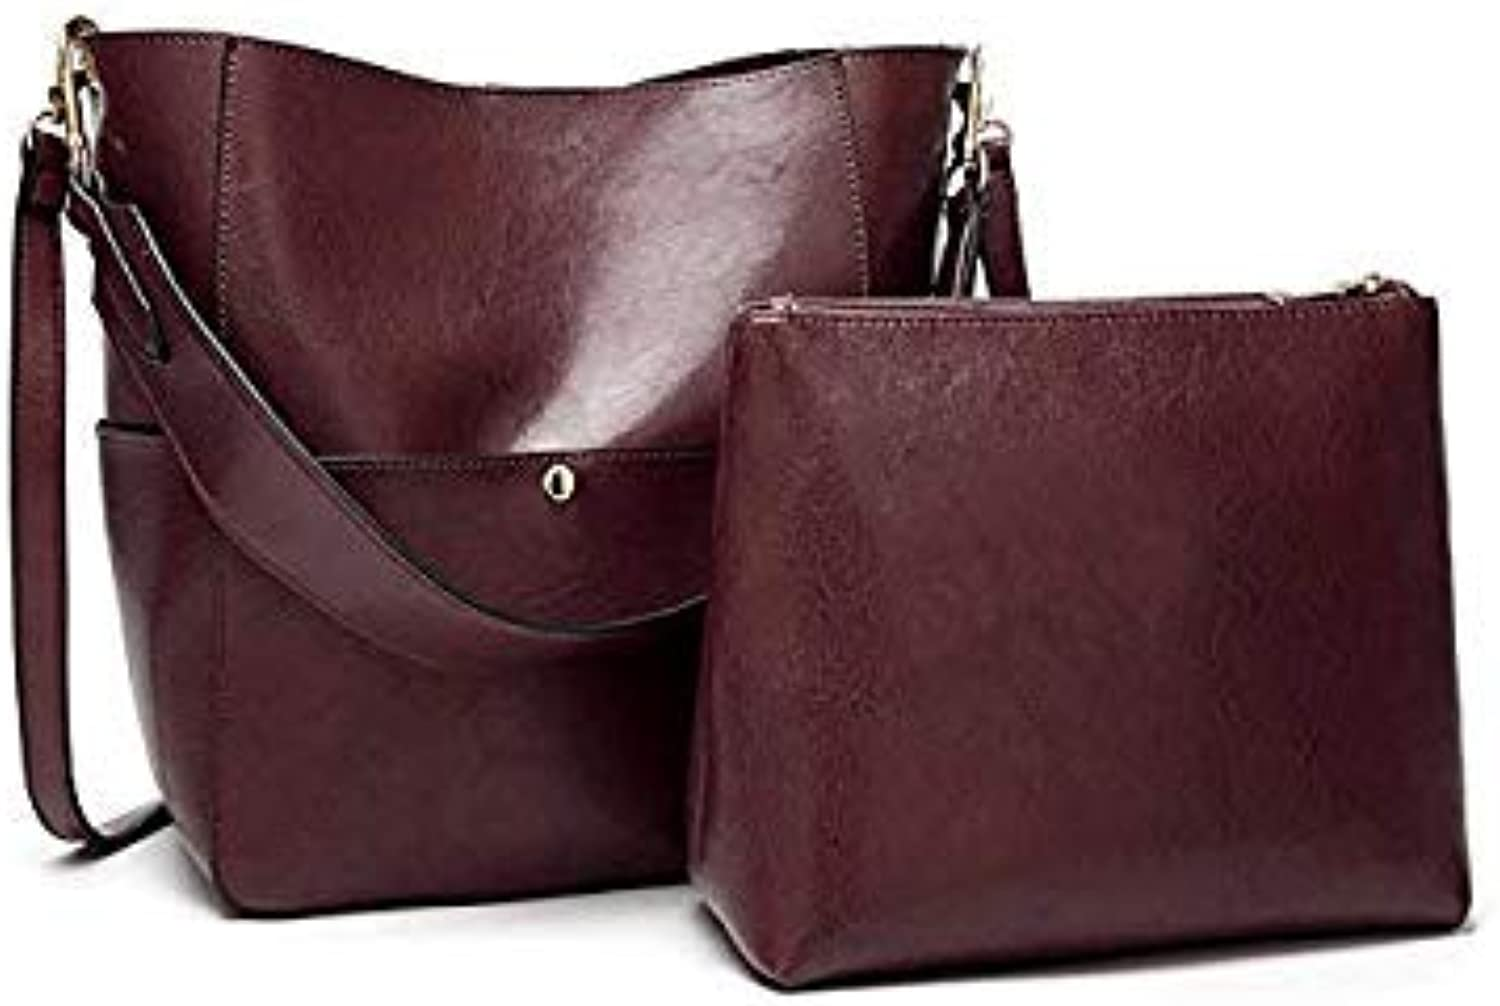 Bloomerang Herald Fashion Large Capacity Women Composite Bag Casual Tote Bags Quality Leather Female Shoulder Bag Lady's Daily Handbags color Coffee 25x14x31cm